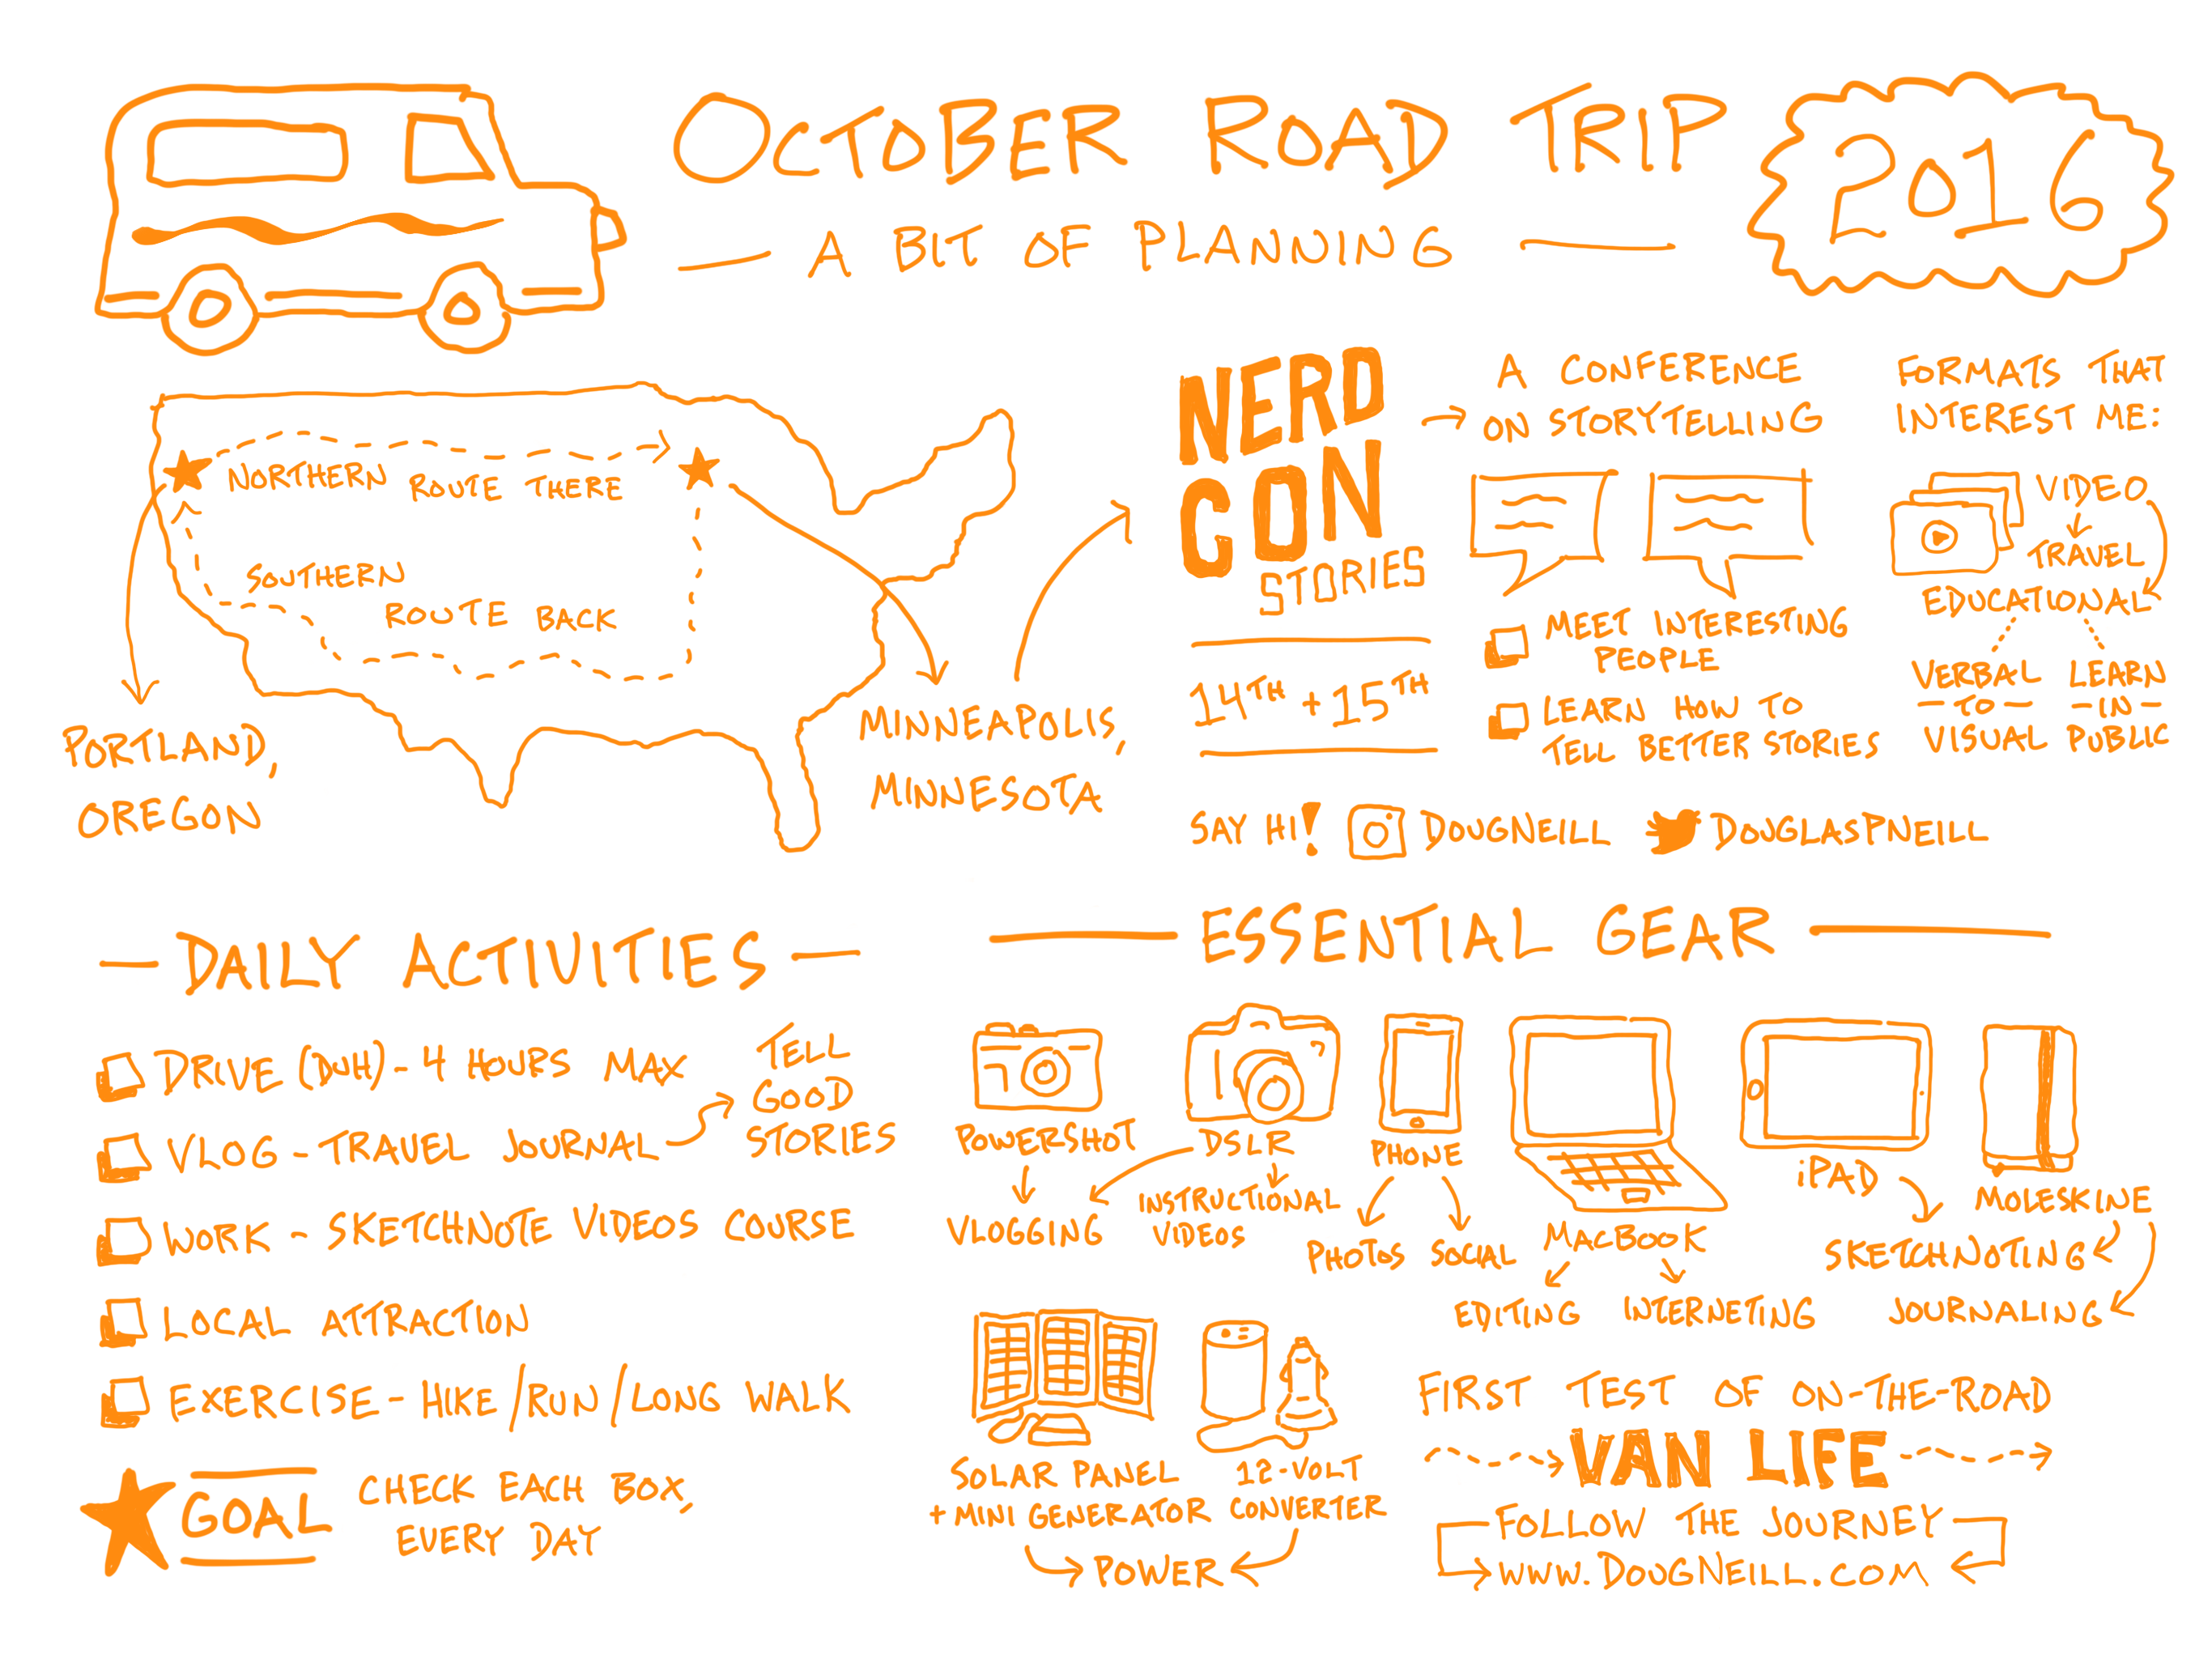 Road Trip To NerdCon: Stories - a bit of planning - Doug Neill